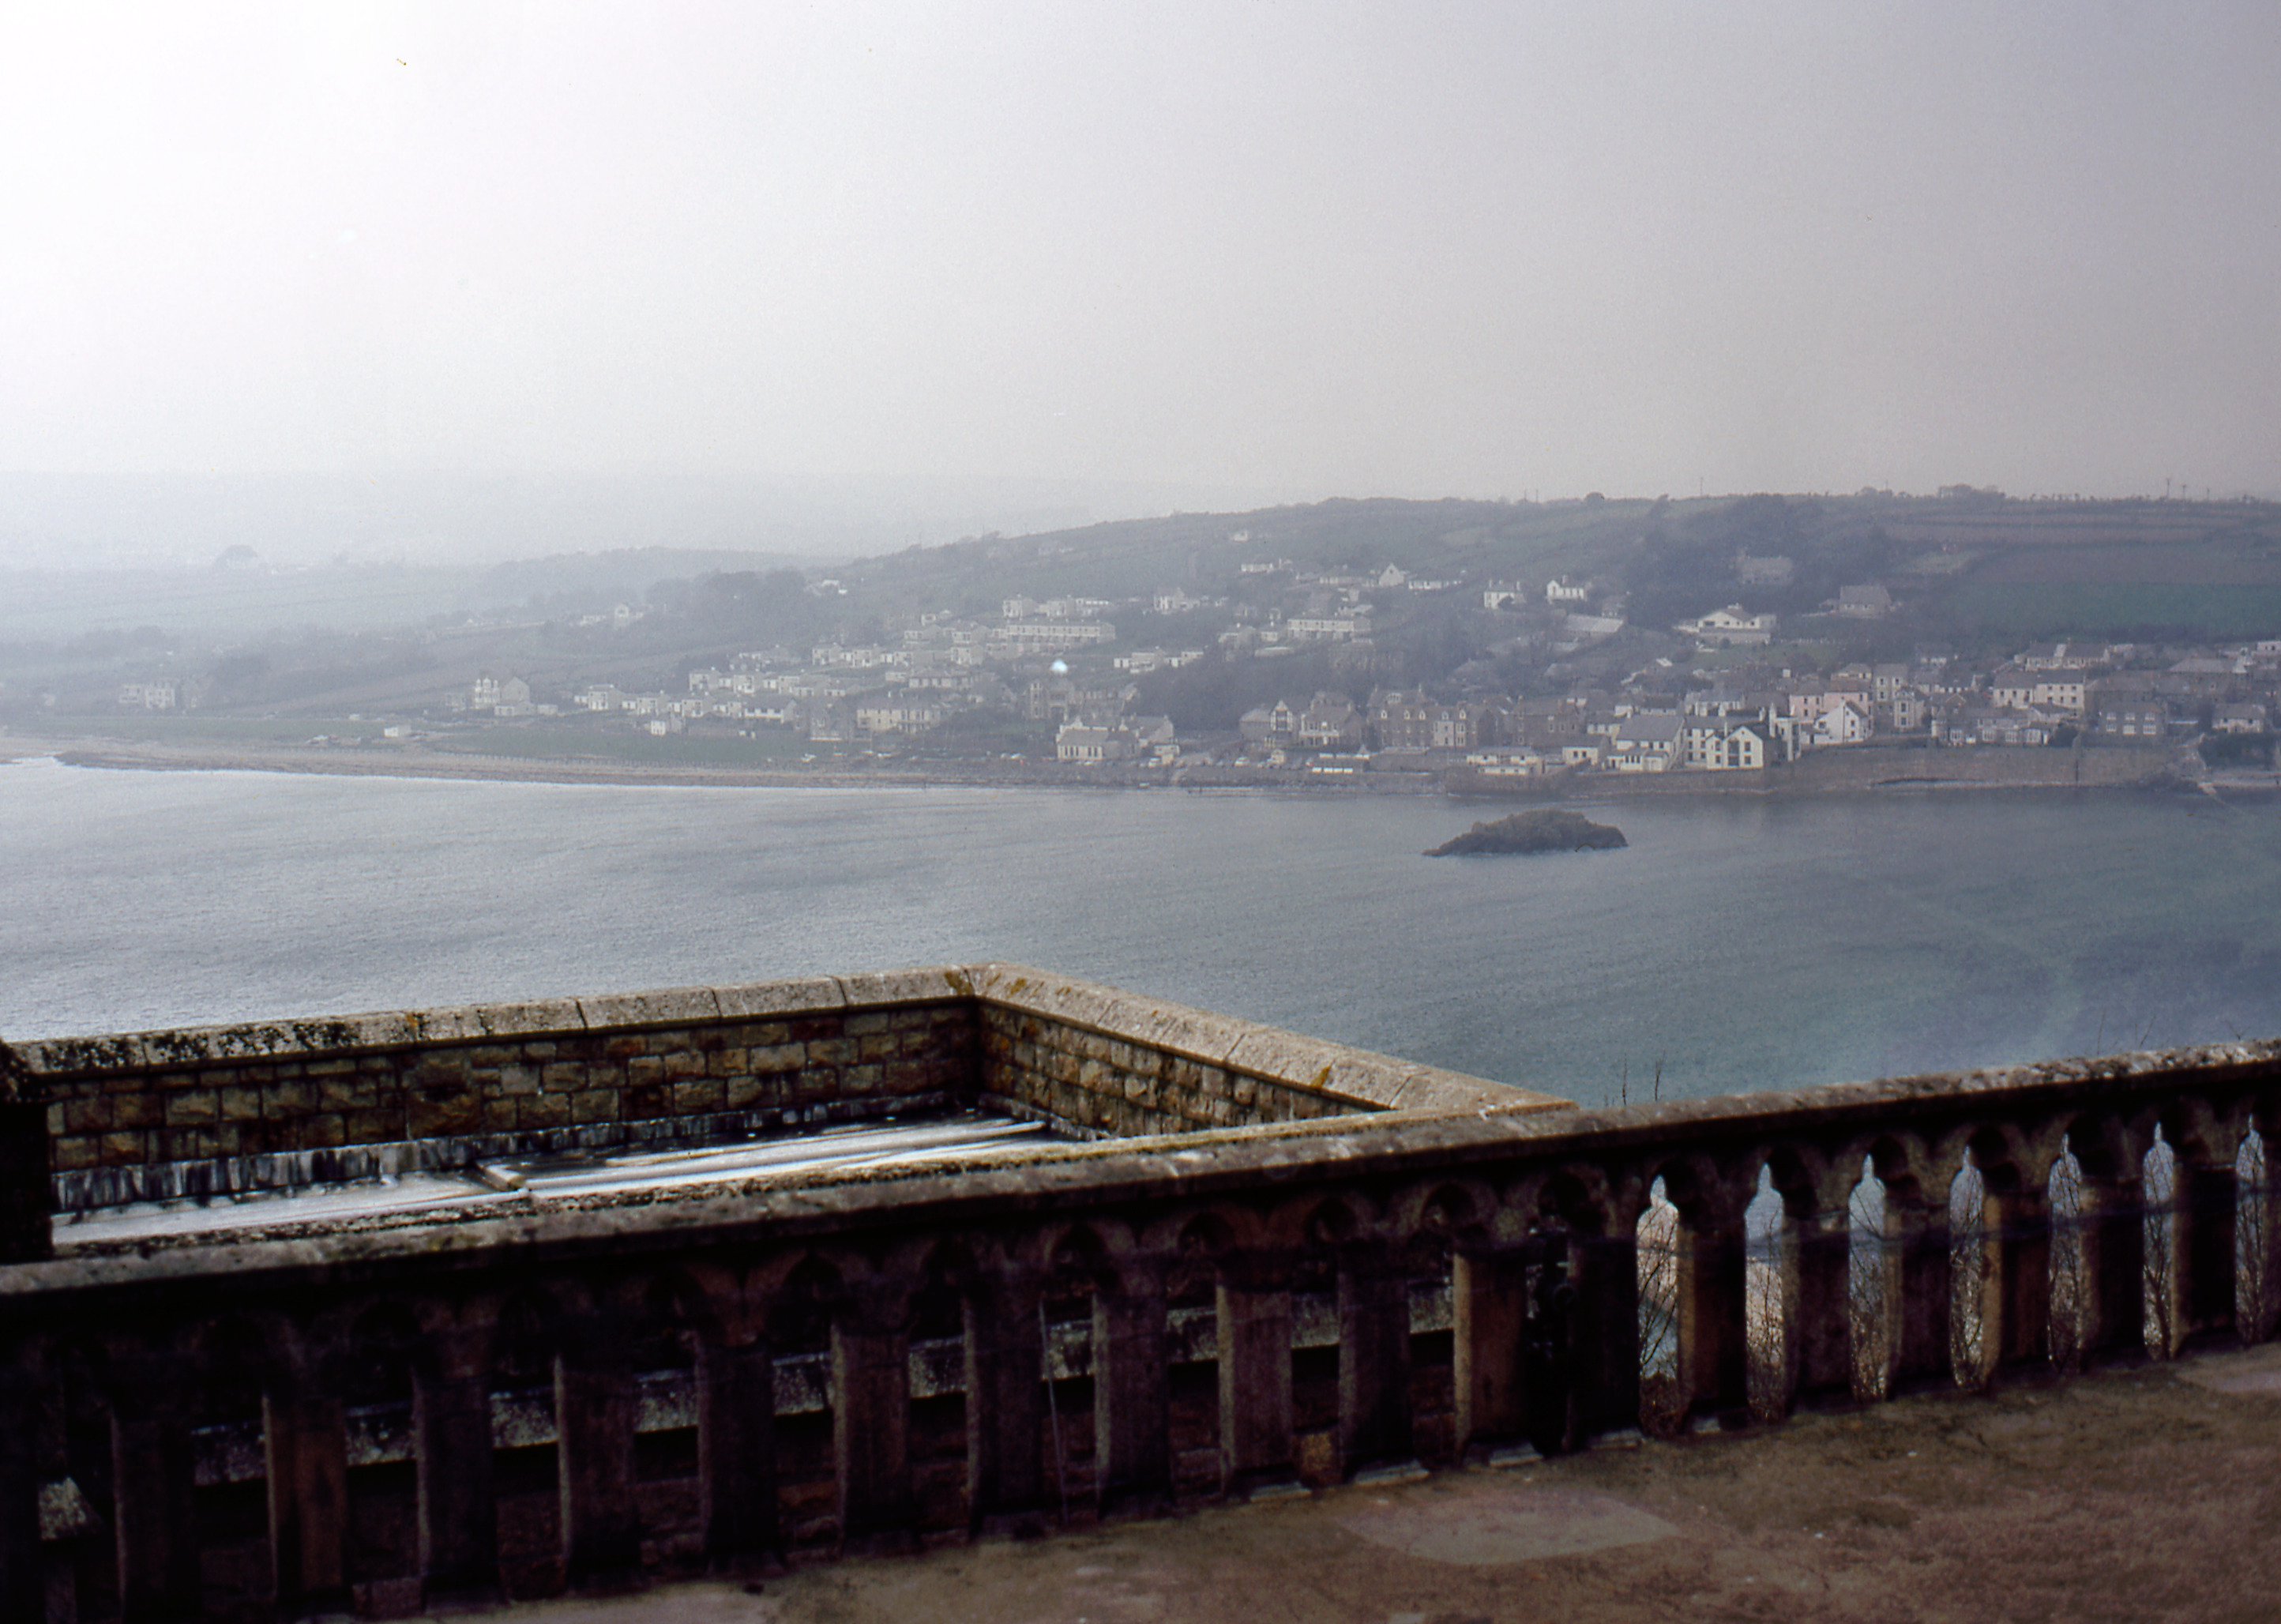 This should be St-Michaels-Mount-3.jpeg.  Is it missing?